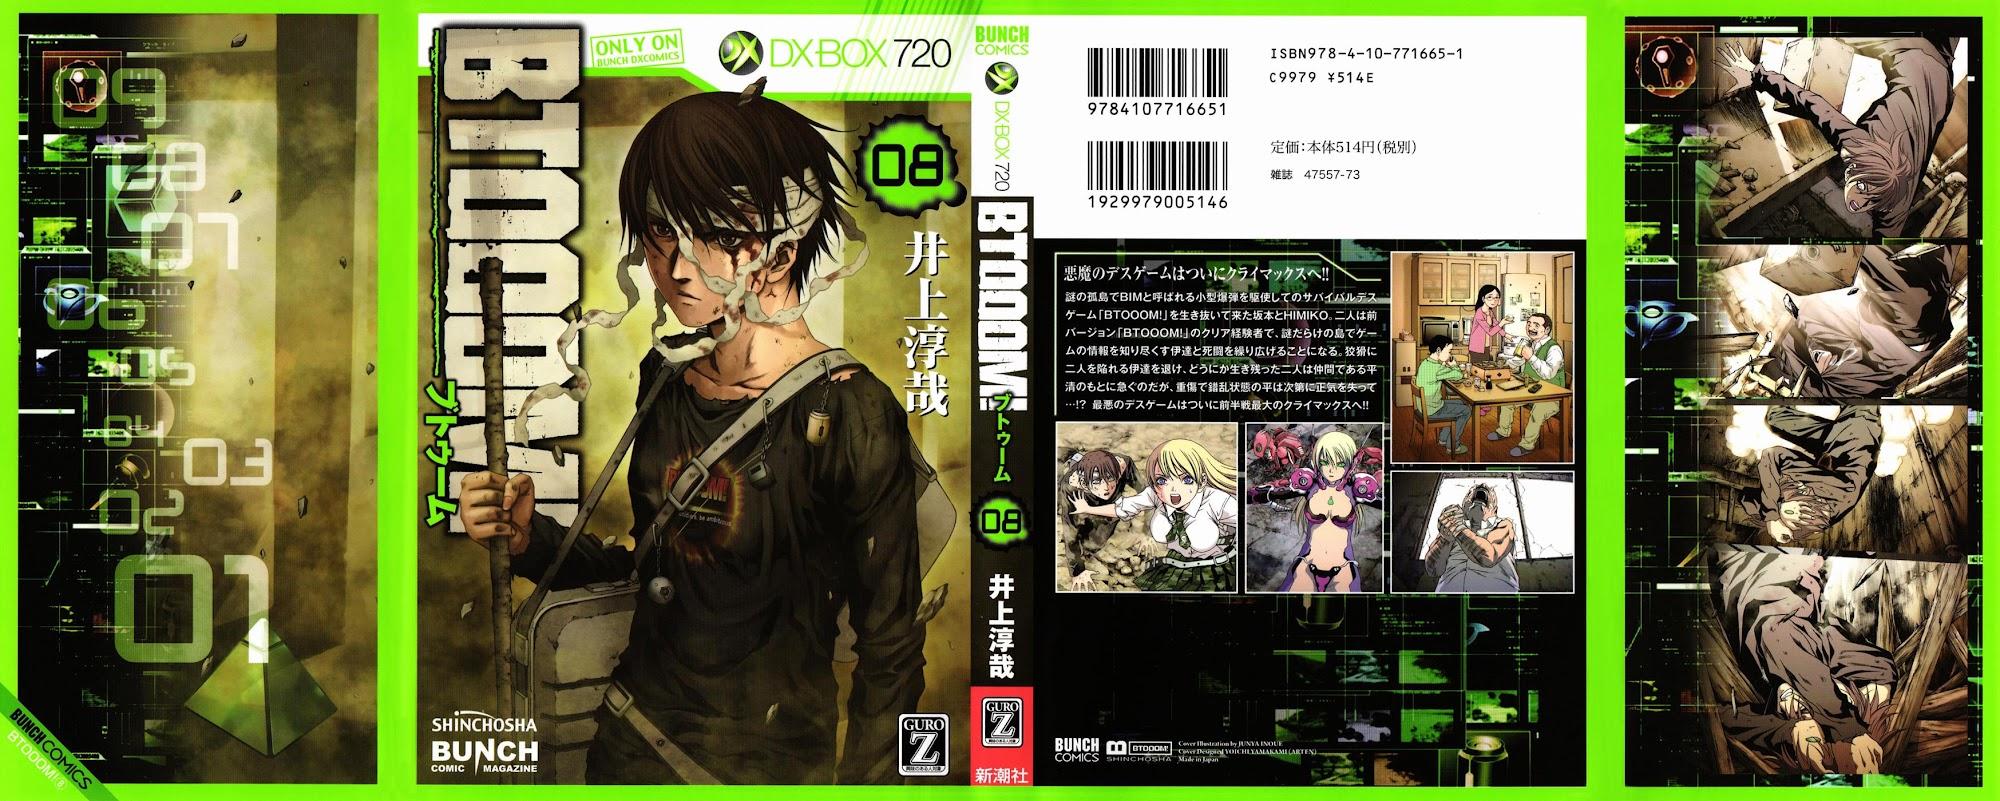 Btooom 46 - image 1 English Scans